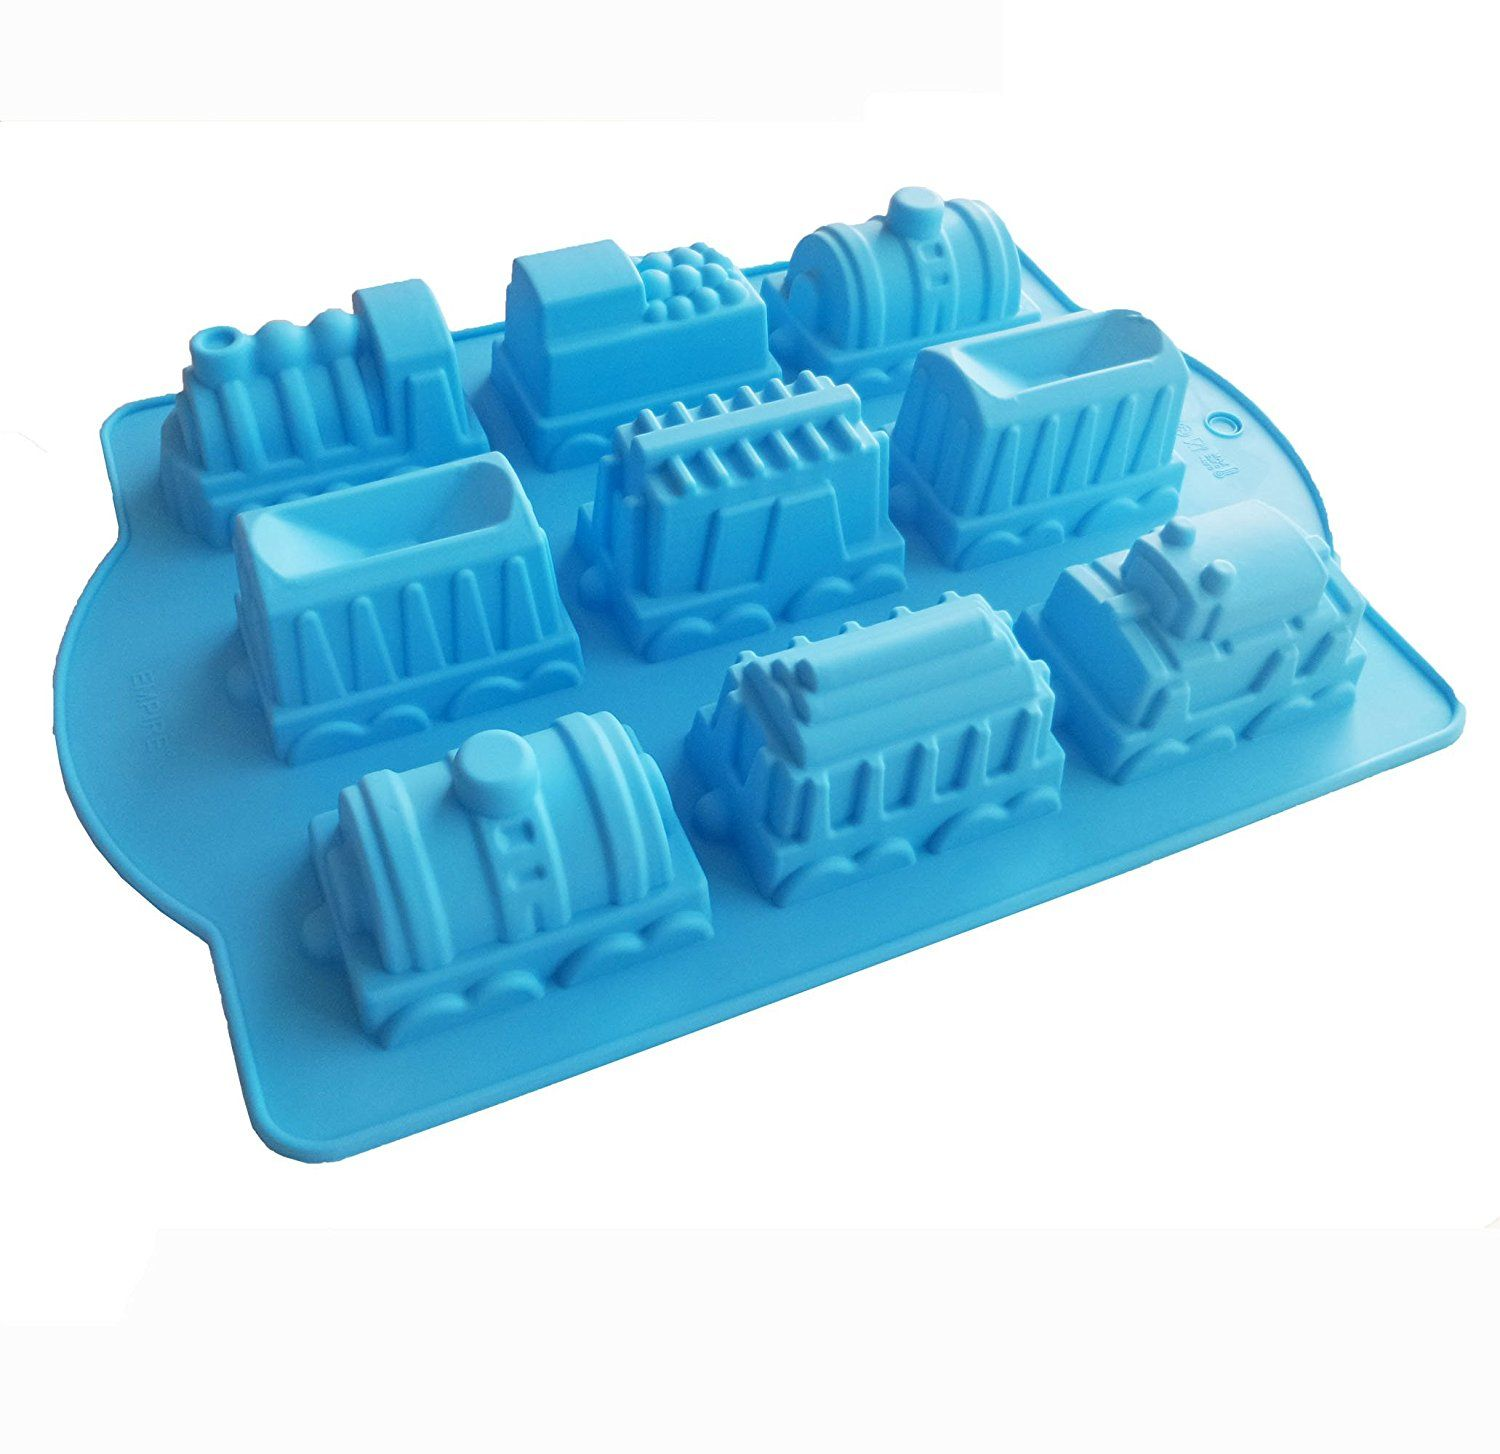 Yunko 9 Cavity Train Shapesilicone Birthday Holiday Cake Pan Cake Mould for Muffins, Cupcakes, Jello, Desserts, Crafts Blue -- See this awesome image  : Small Pastry Molds